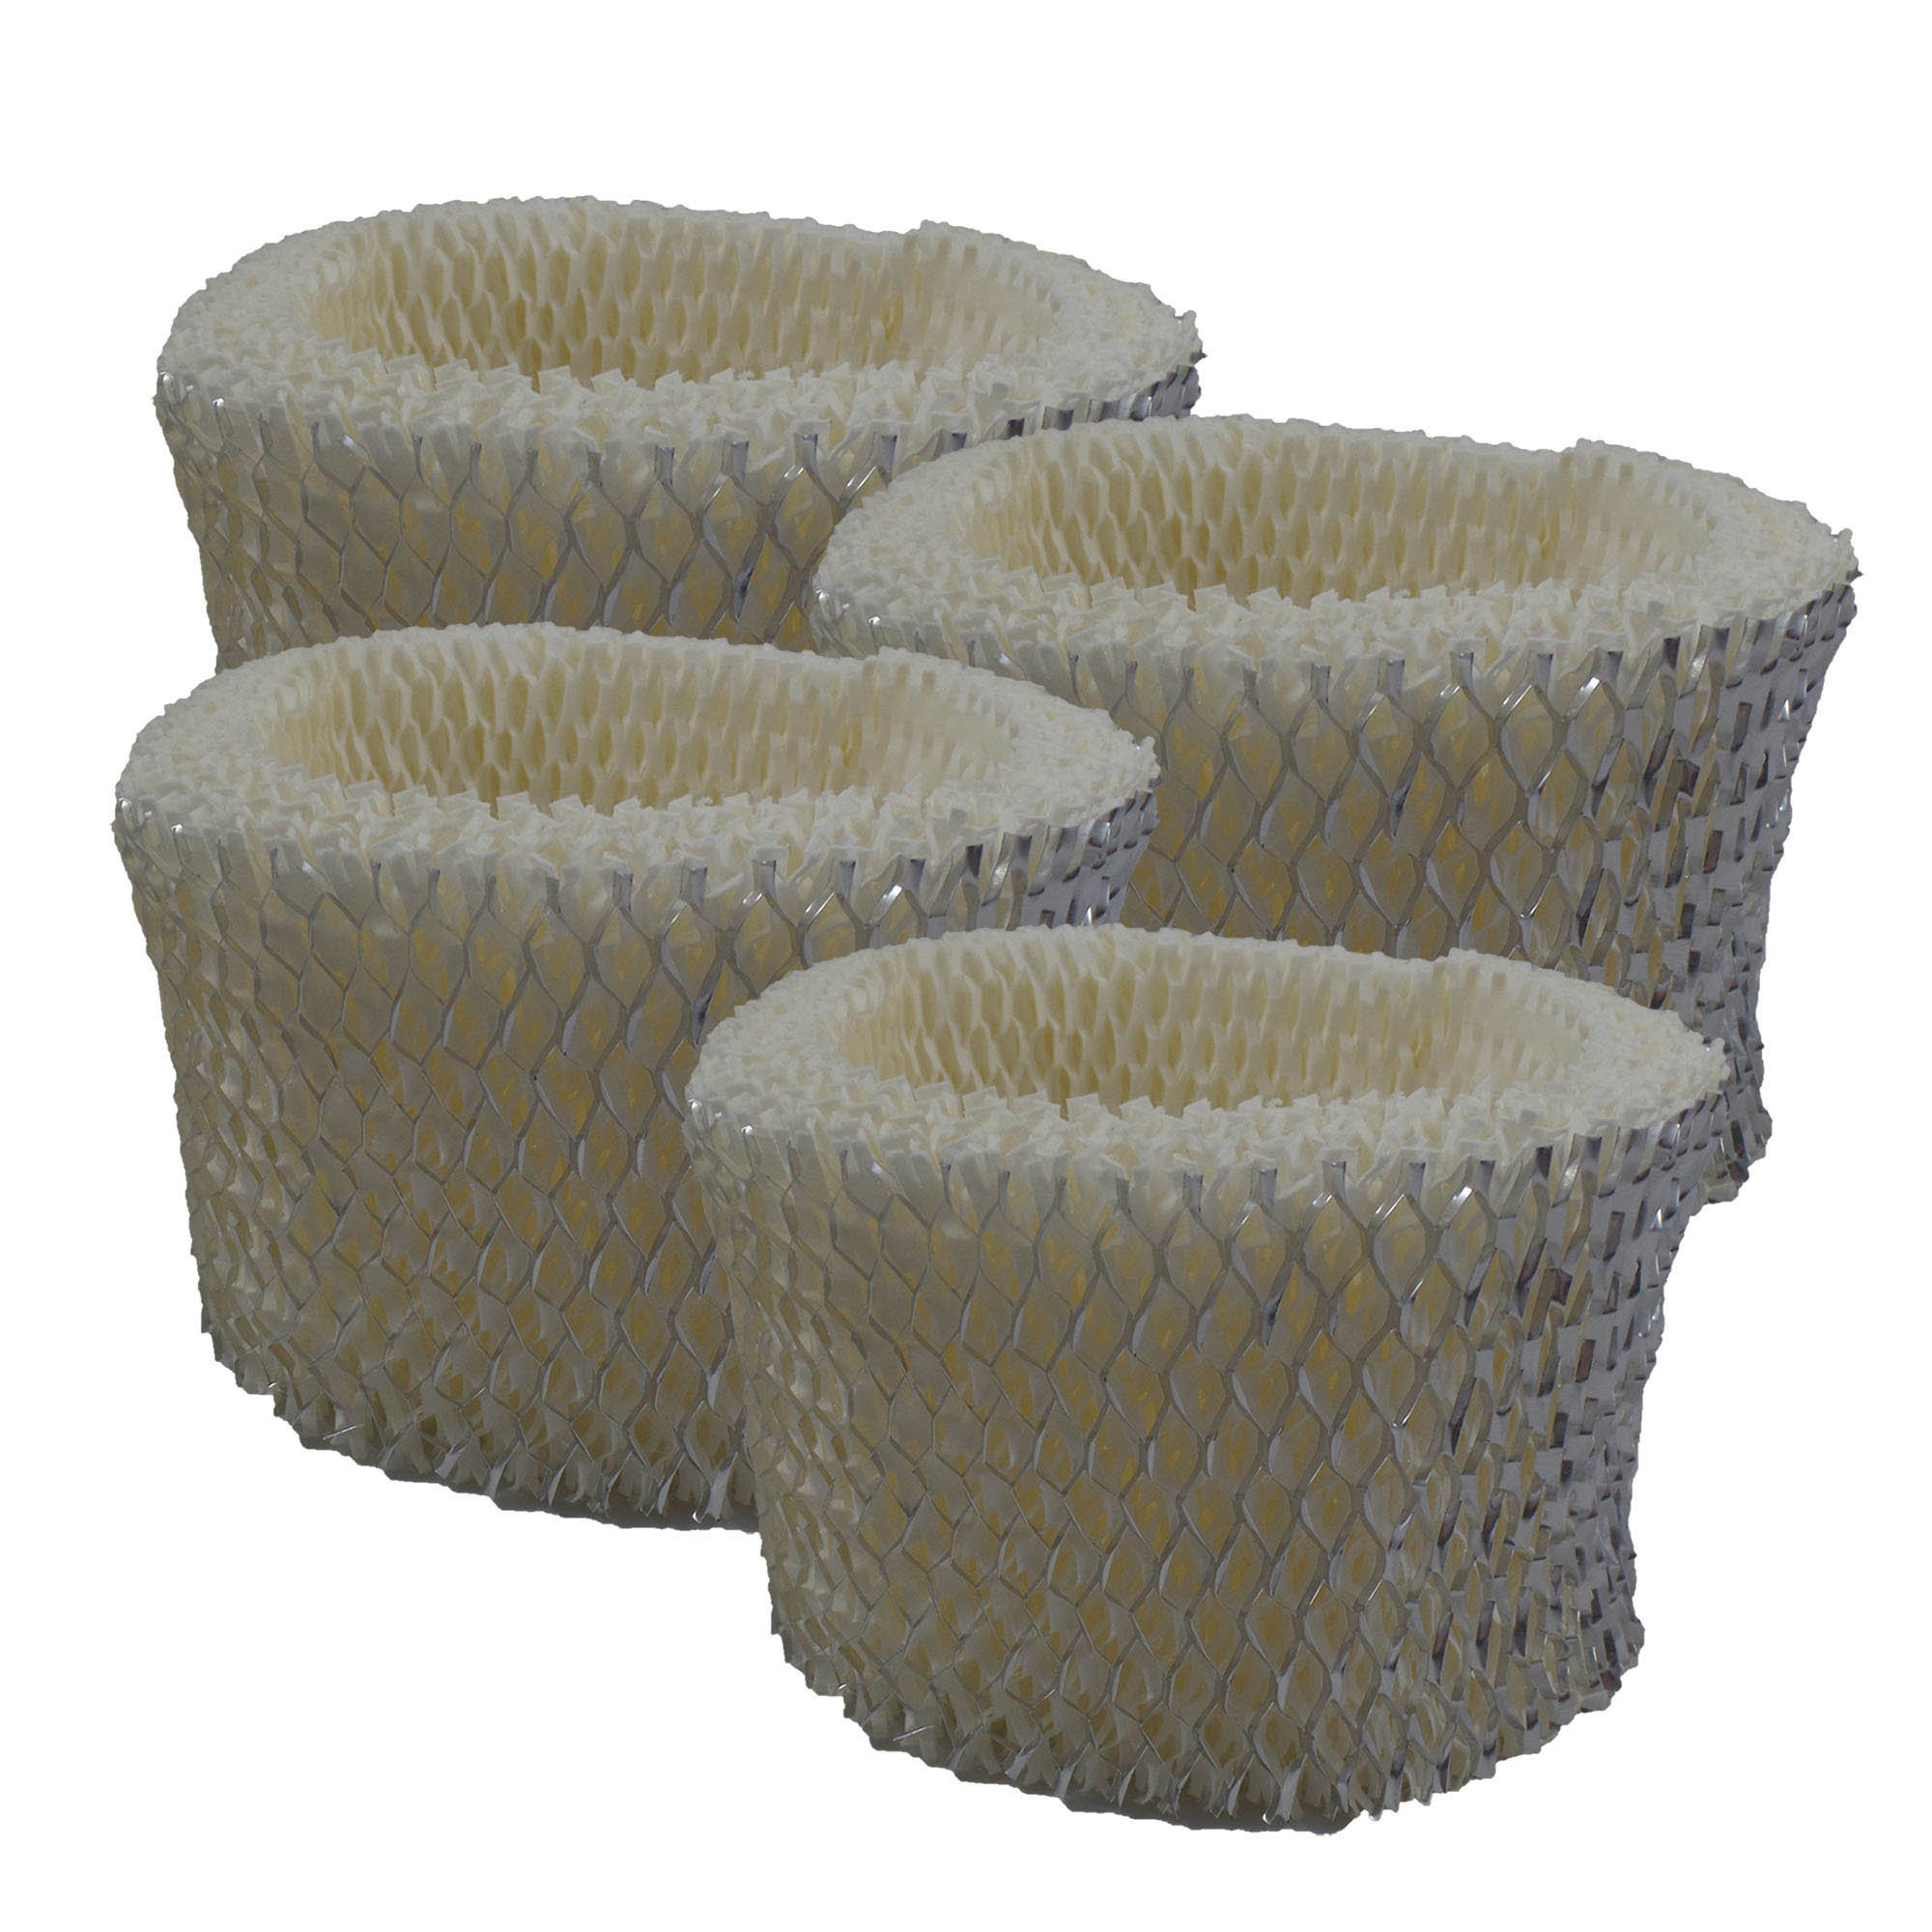 Air Filter Factory 4-PACK Compatible Replacement For Holmes HM2025, HM2030, HM1230, HM1275, HM1280, HM1281, HM1285 Humidifier Filter